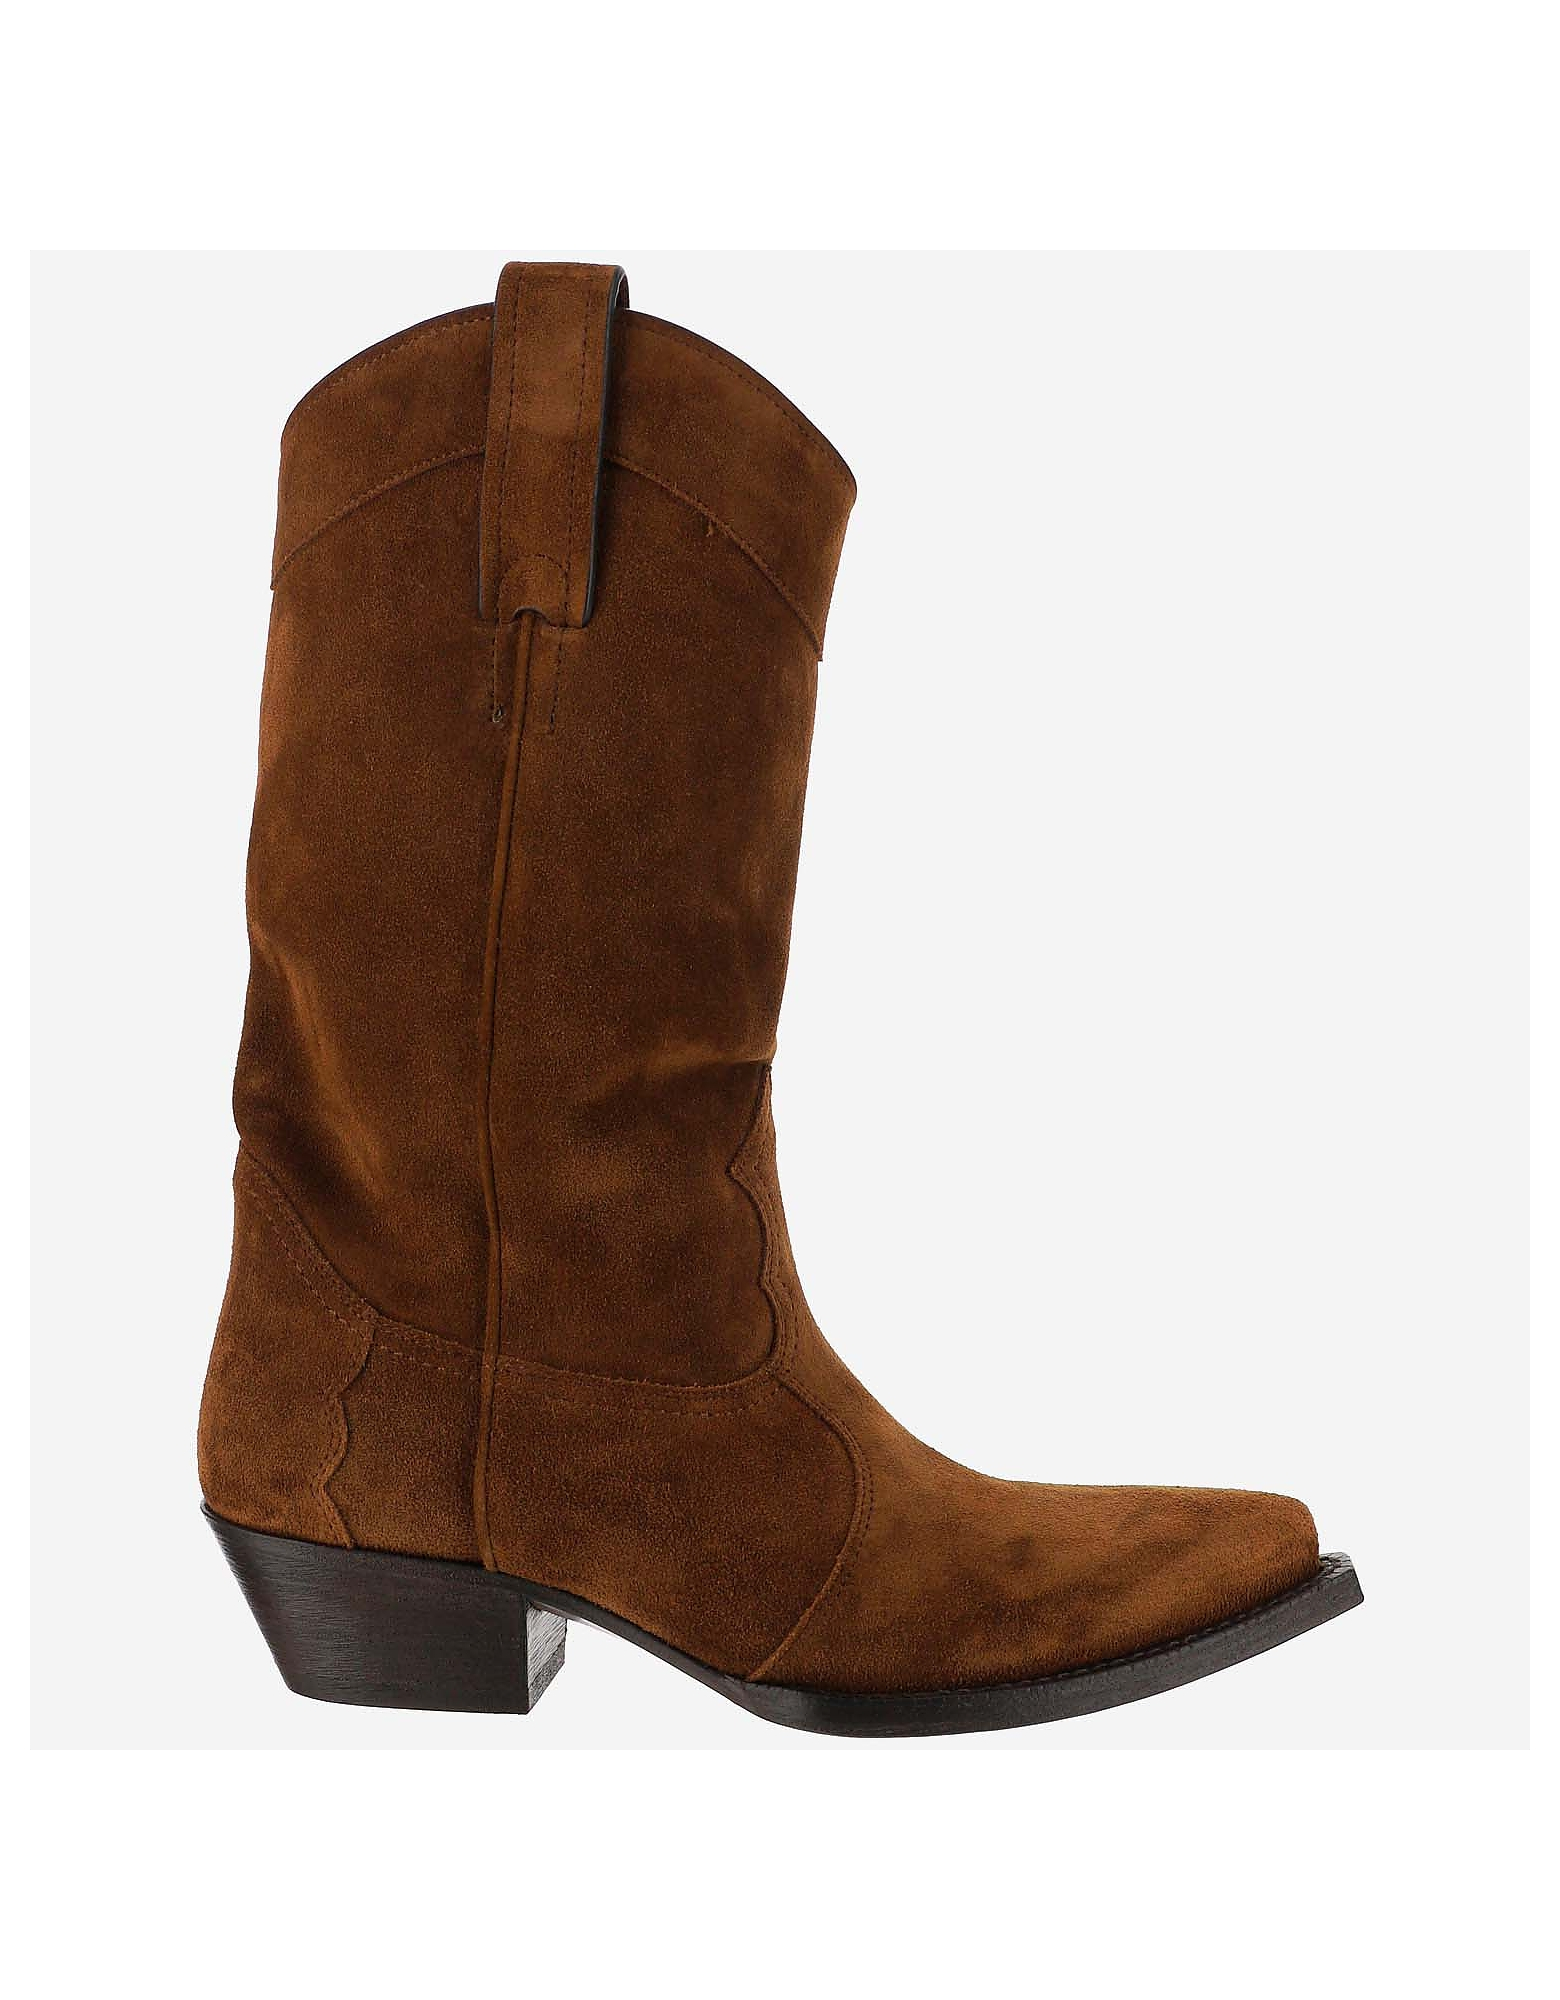 Saint Laurent Designer Shoes, Brown Ankle Boots